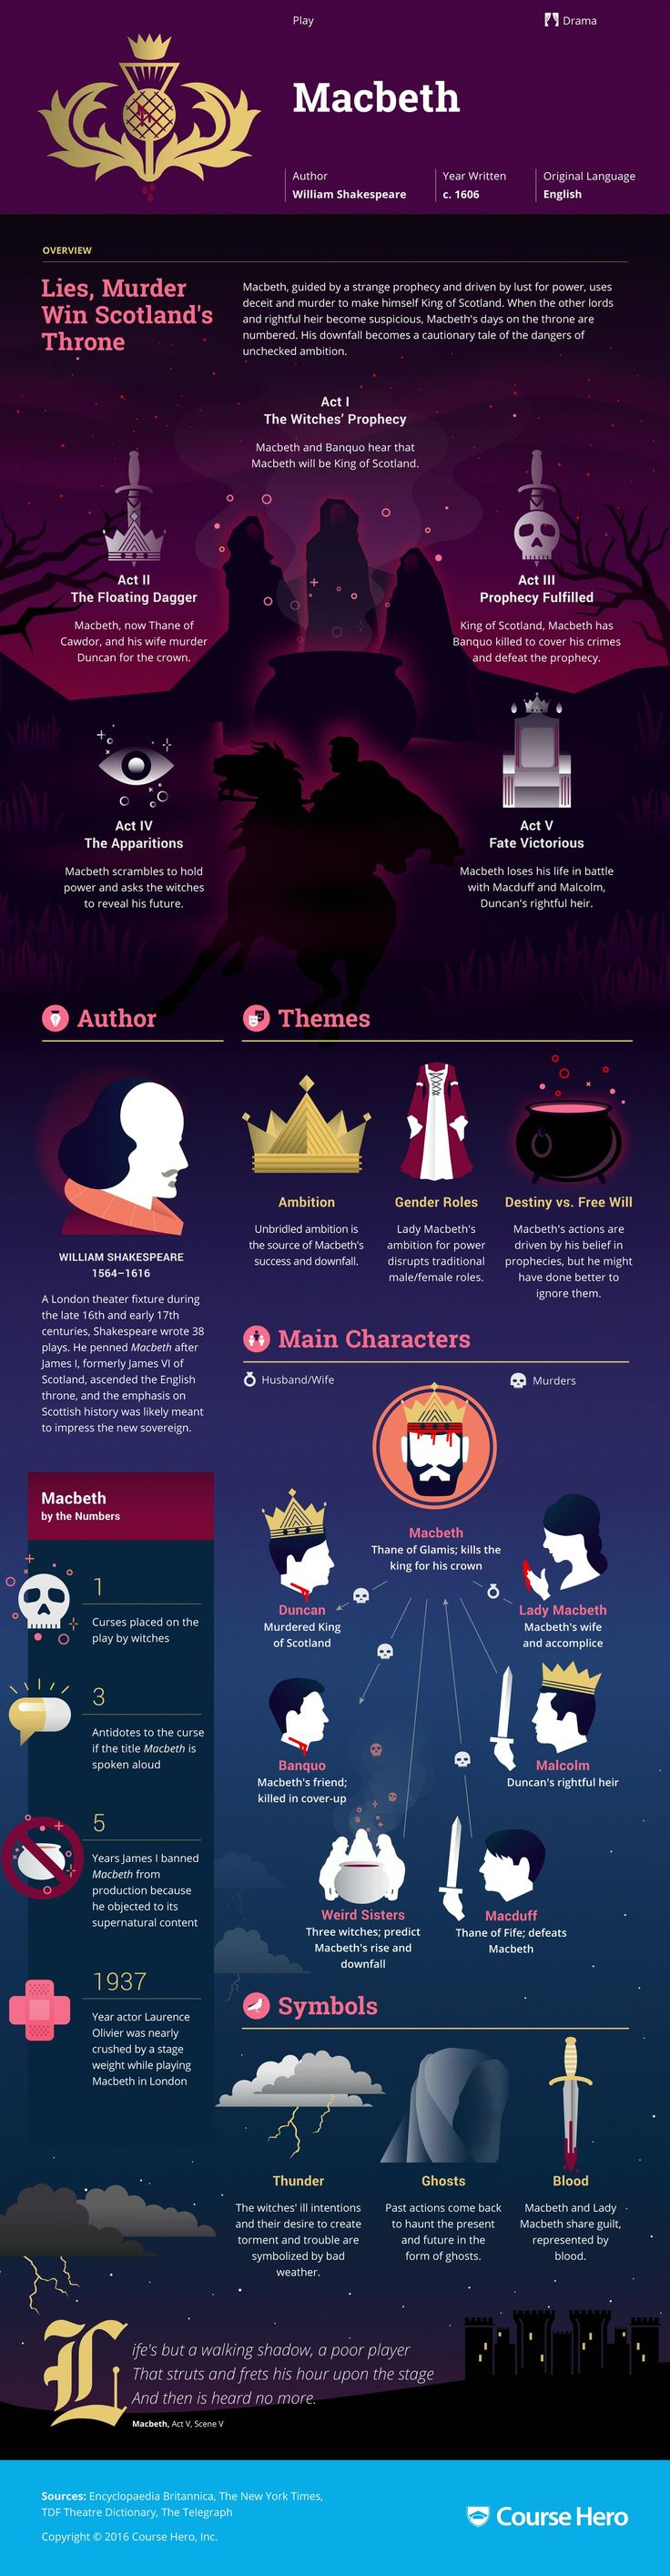 Macbeth Infographic | Course Hero